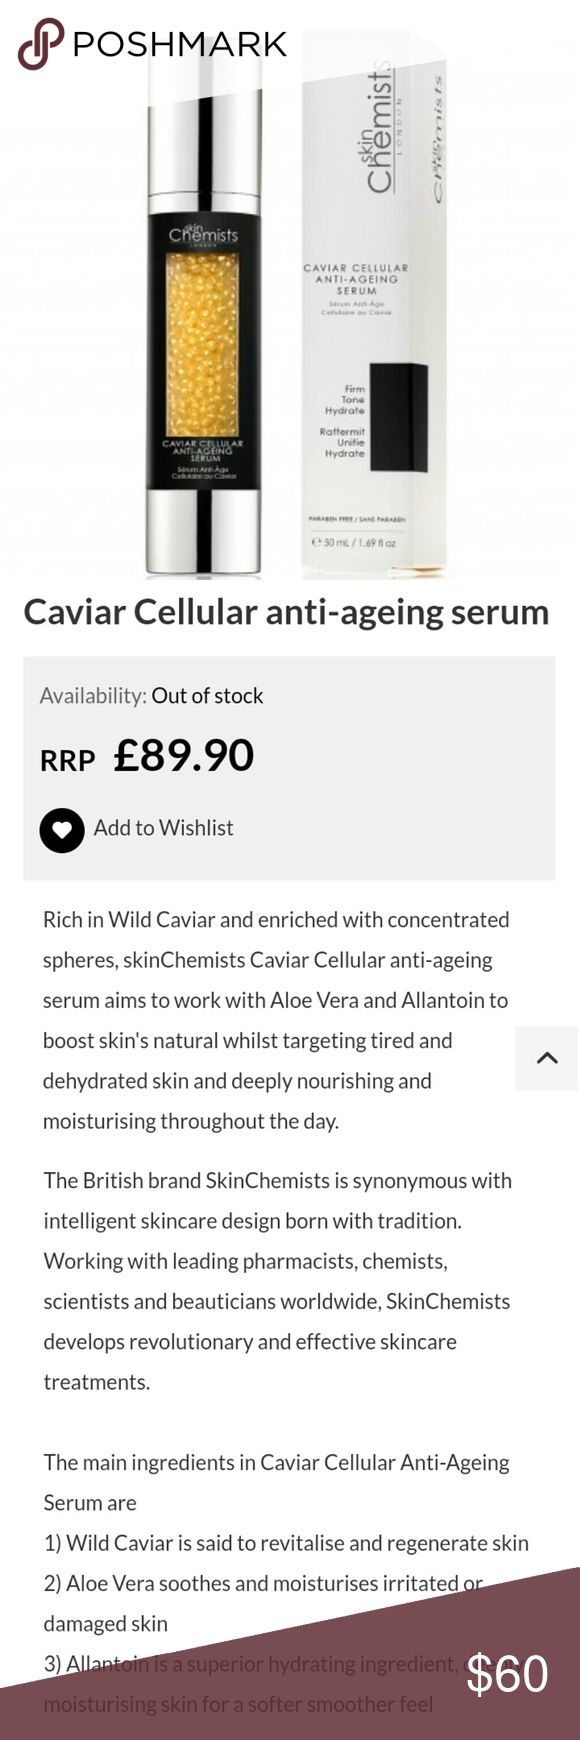 Caviar Cellular Anti-ageing Serum I used this maybe twice, however, I no longer need it because I am using other products at the moment. You can see that this is full. I will price accordingly since I have technically used it.  Use this product if you have dry skin? Use this product if you are concerned about fine lines and wrinkles Use this product if you are concerned about damaged skin Use this product if you have sensitive skin Use this product for increased radiance? Use this product…